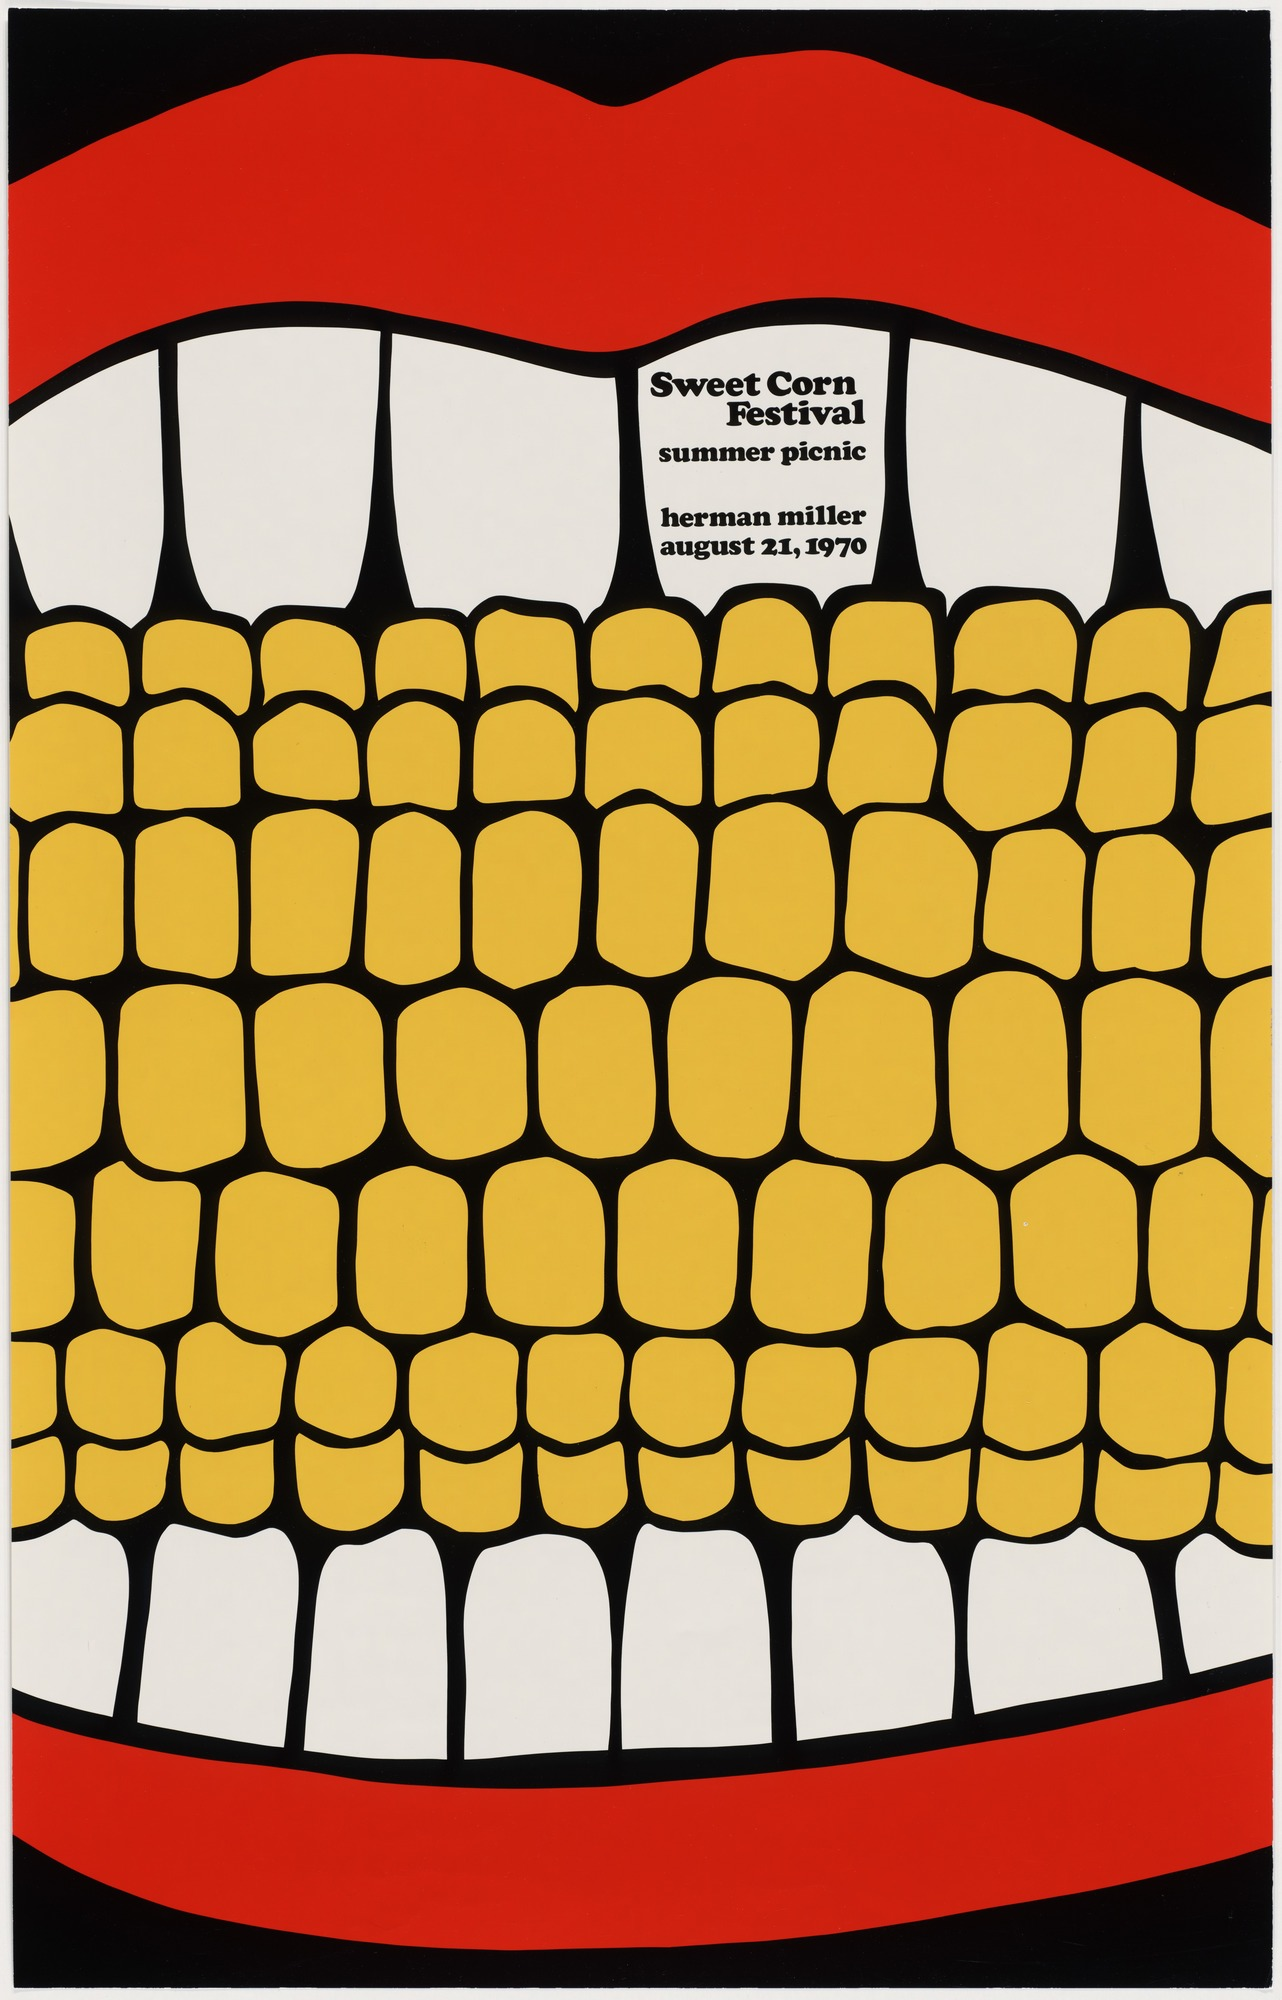 illustrational poster of a mouth with red lipstick eating a corncob